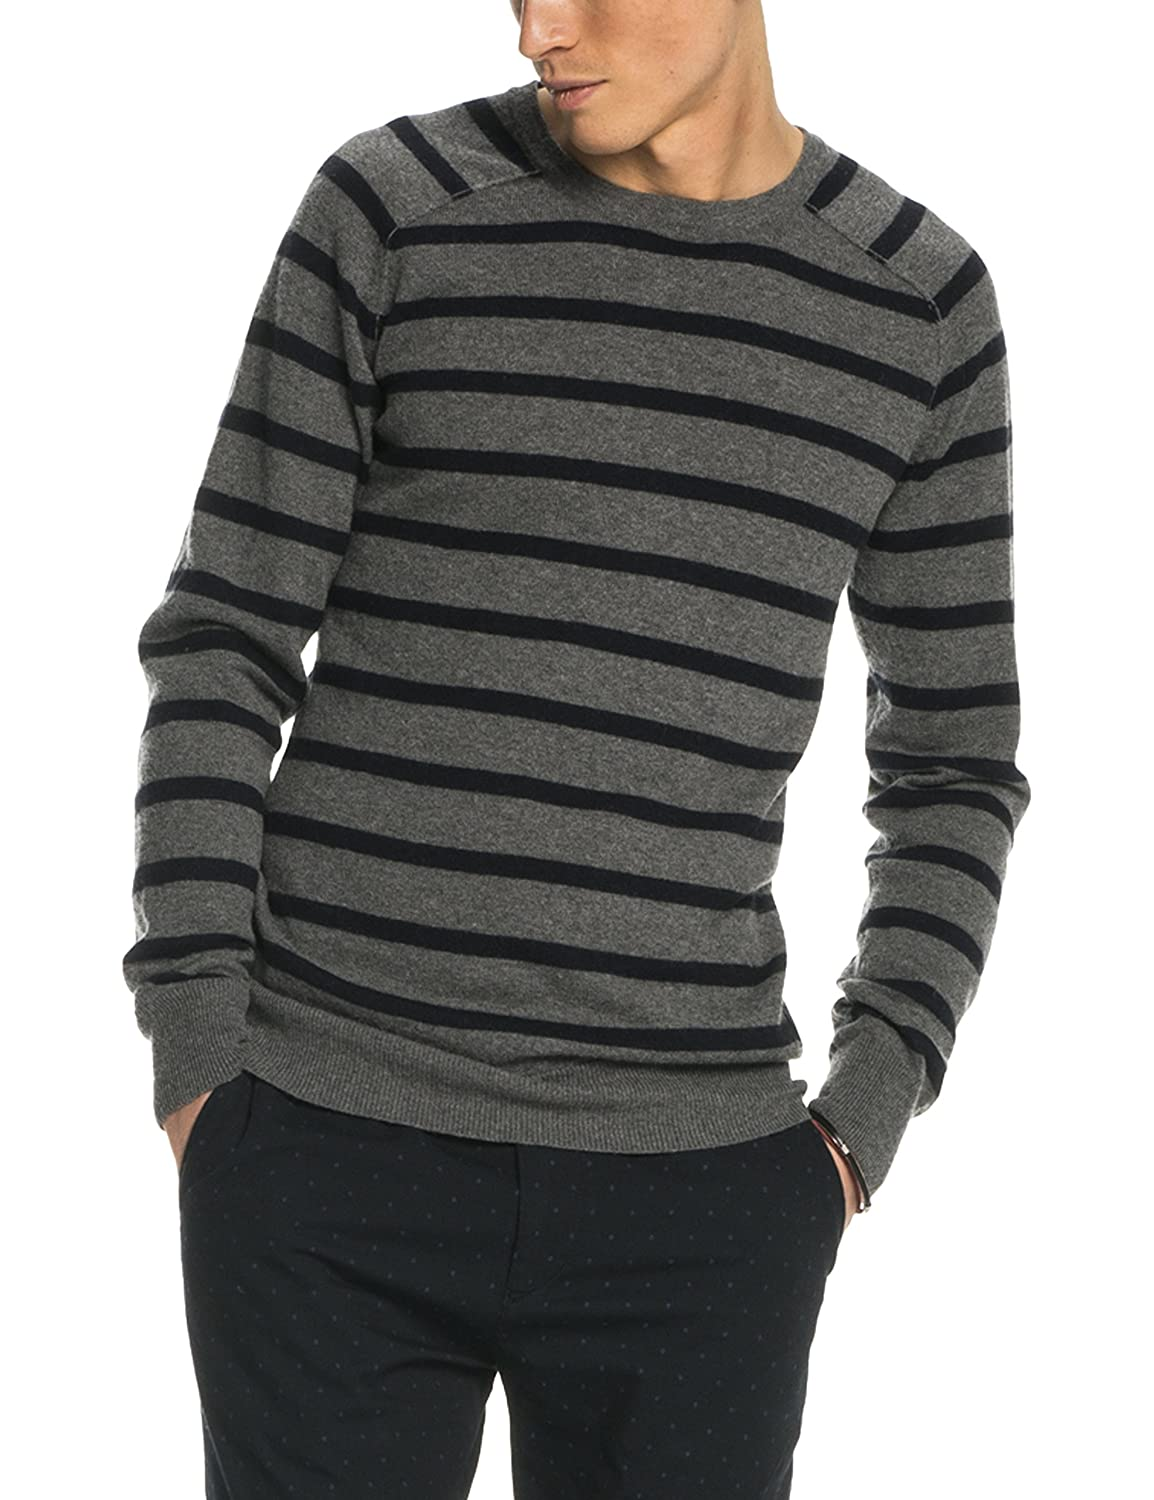 Scotch & Soda Herren Classic Crewneck Pullover in Fine Merino/Cotton Quality